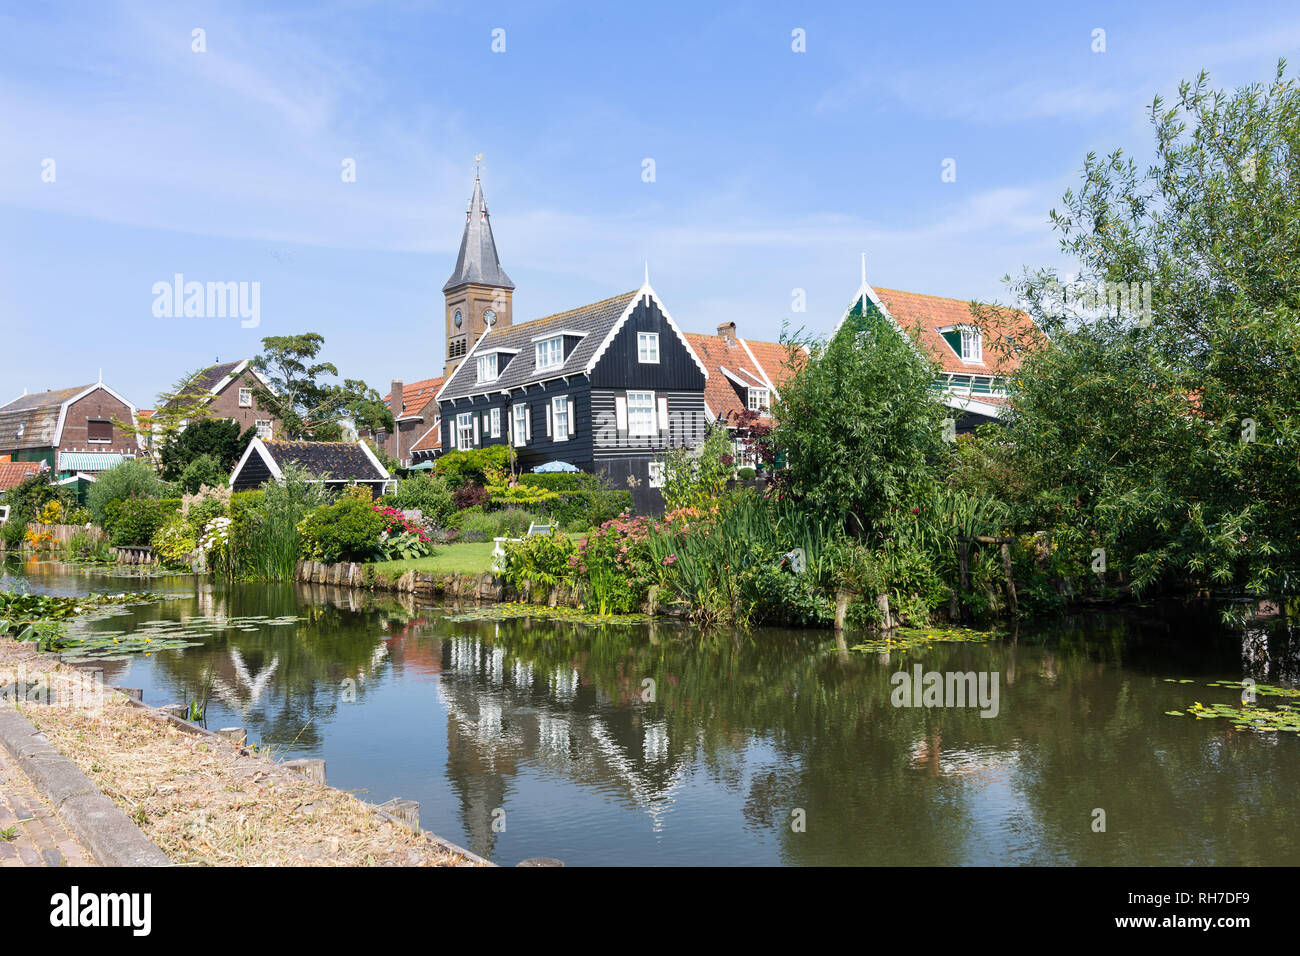 panorama of houses and a canal in hisotric city Edam, Netherlands - Stock Image